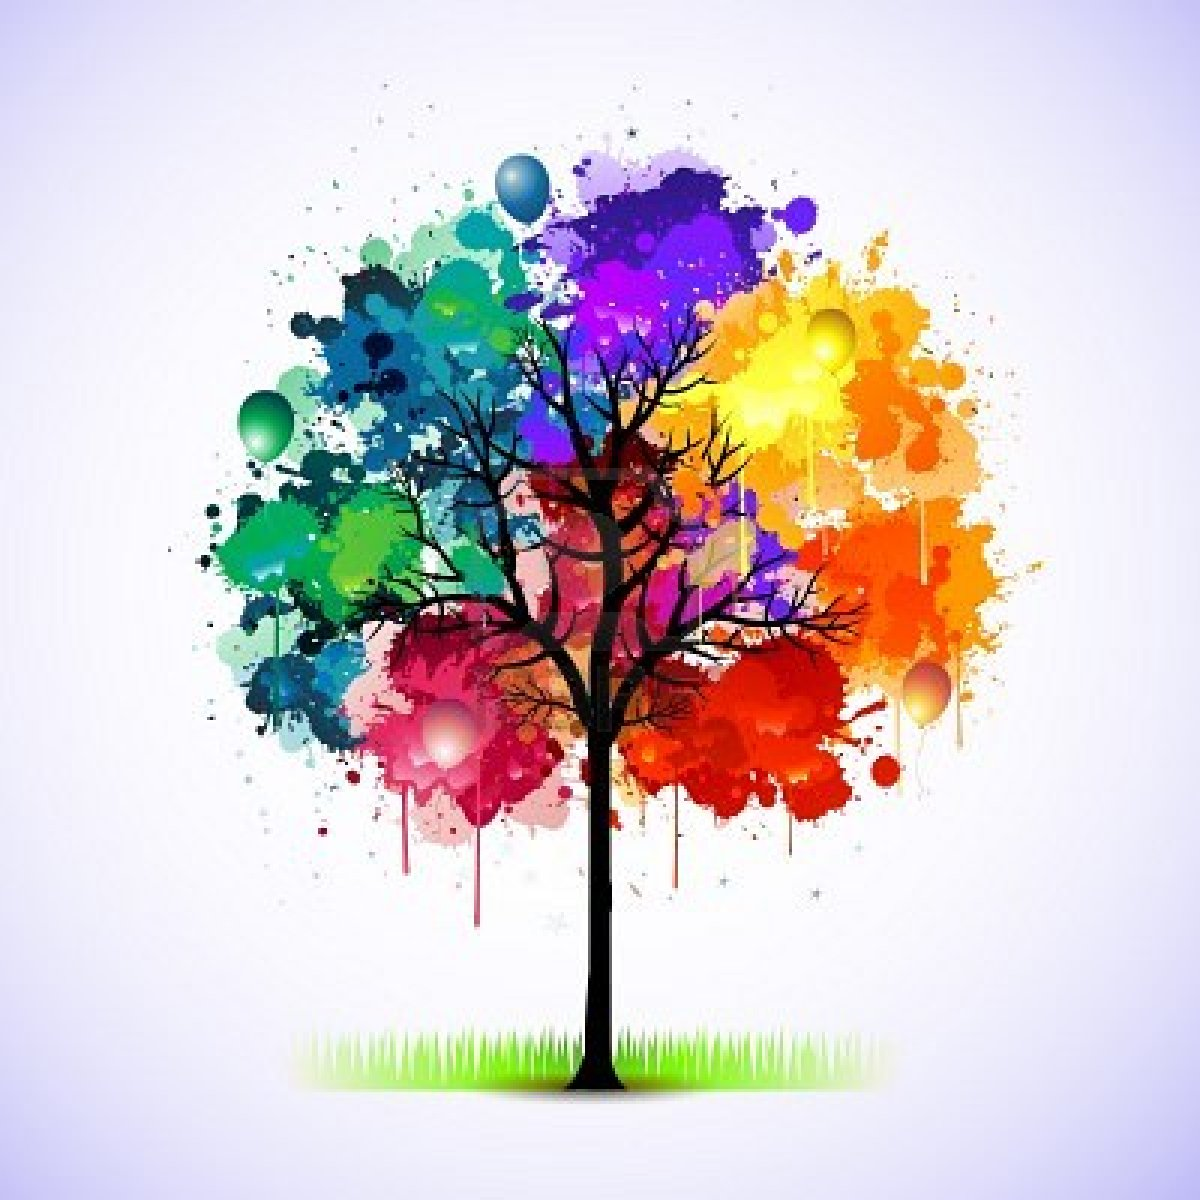 colorful-look-closely-there-are-balloons-in-the-tree-wallpaper-wp424635-1